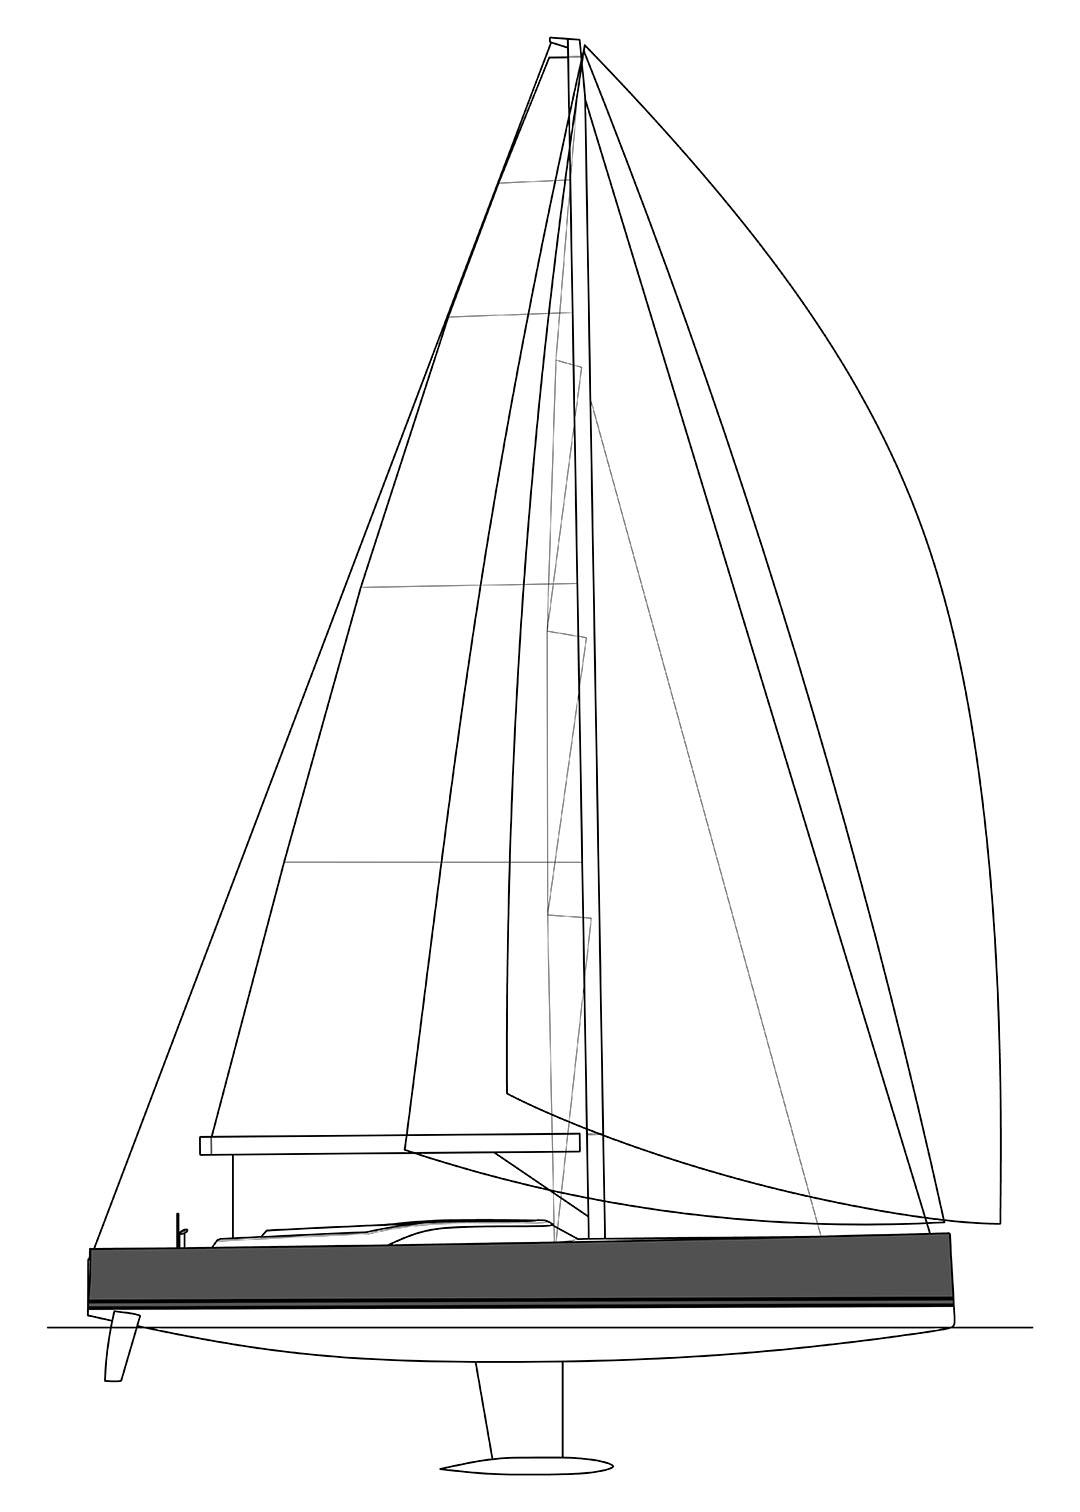 d91 800 r4 sail plan b copie